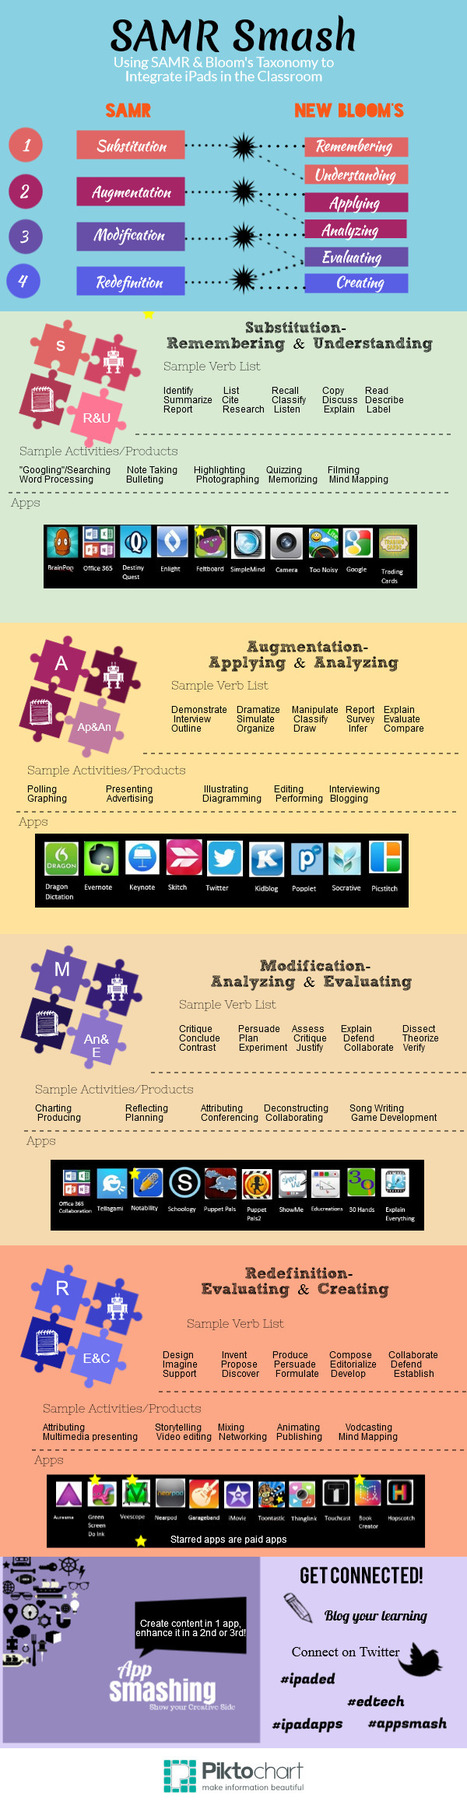 SAMR App Dice | 21st Century Blended Personalised and Flipped Learning | Scoop.it